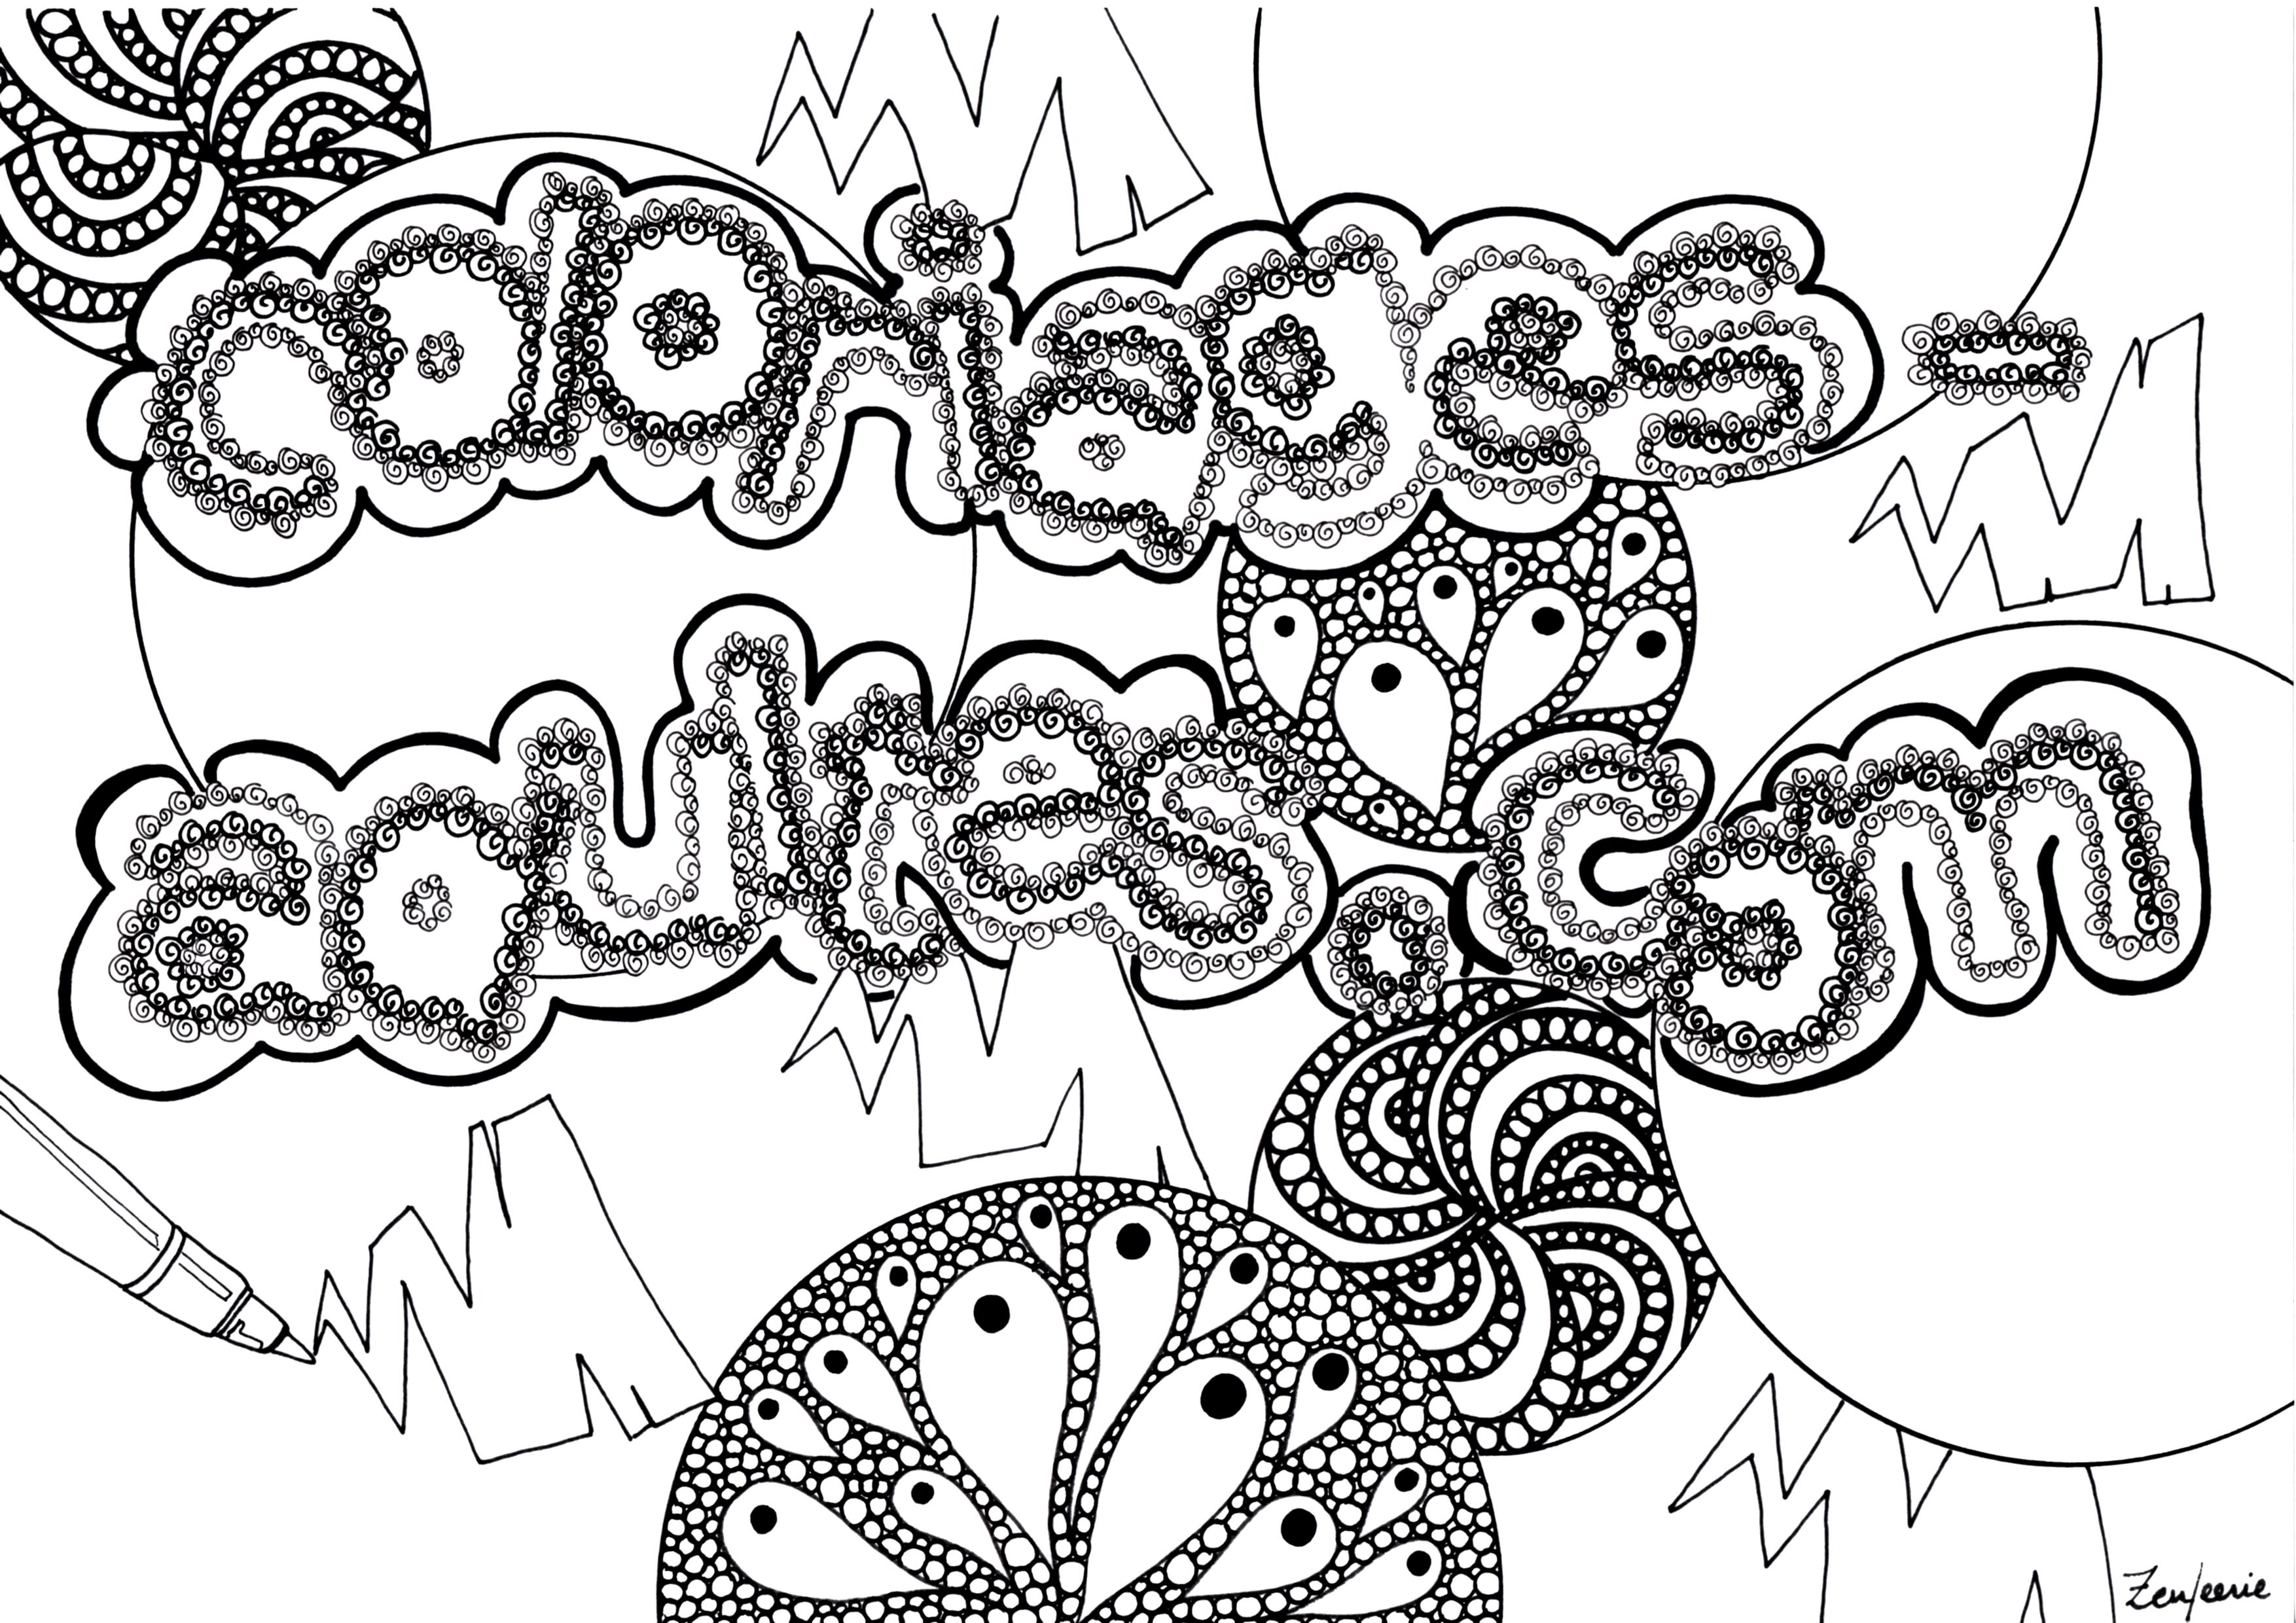 Simple Adult coloring page for children